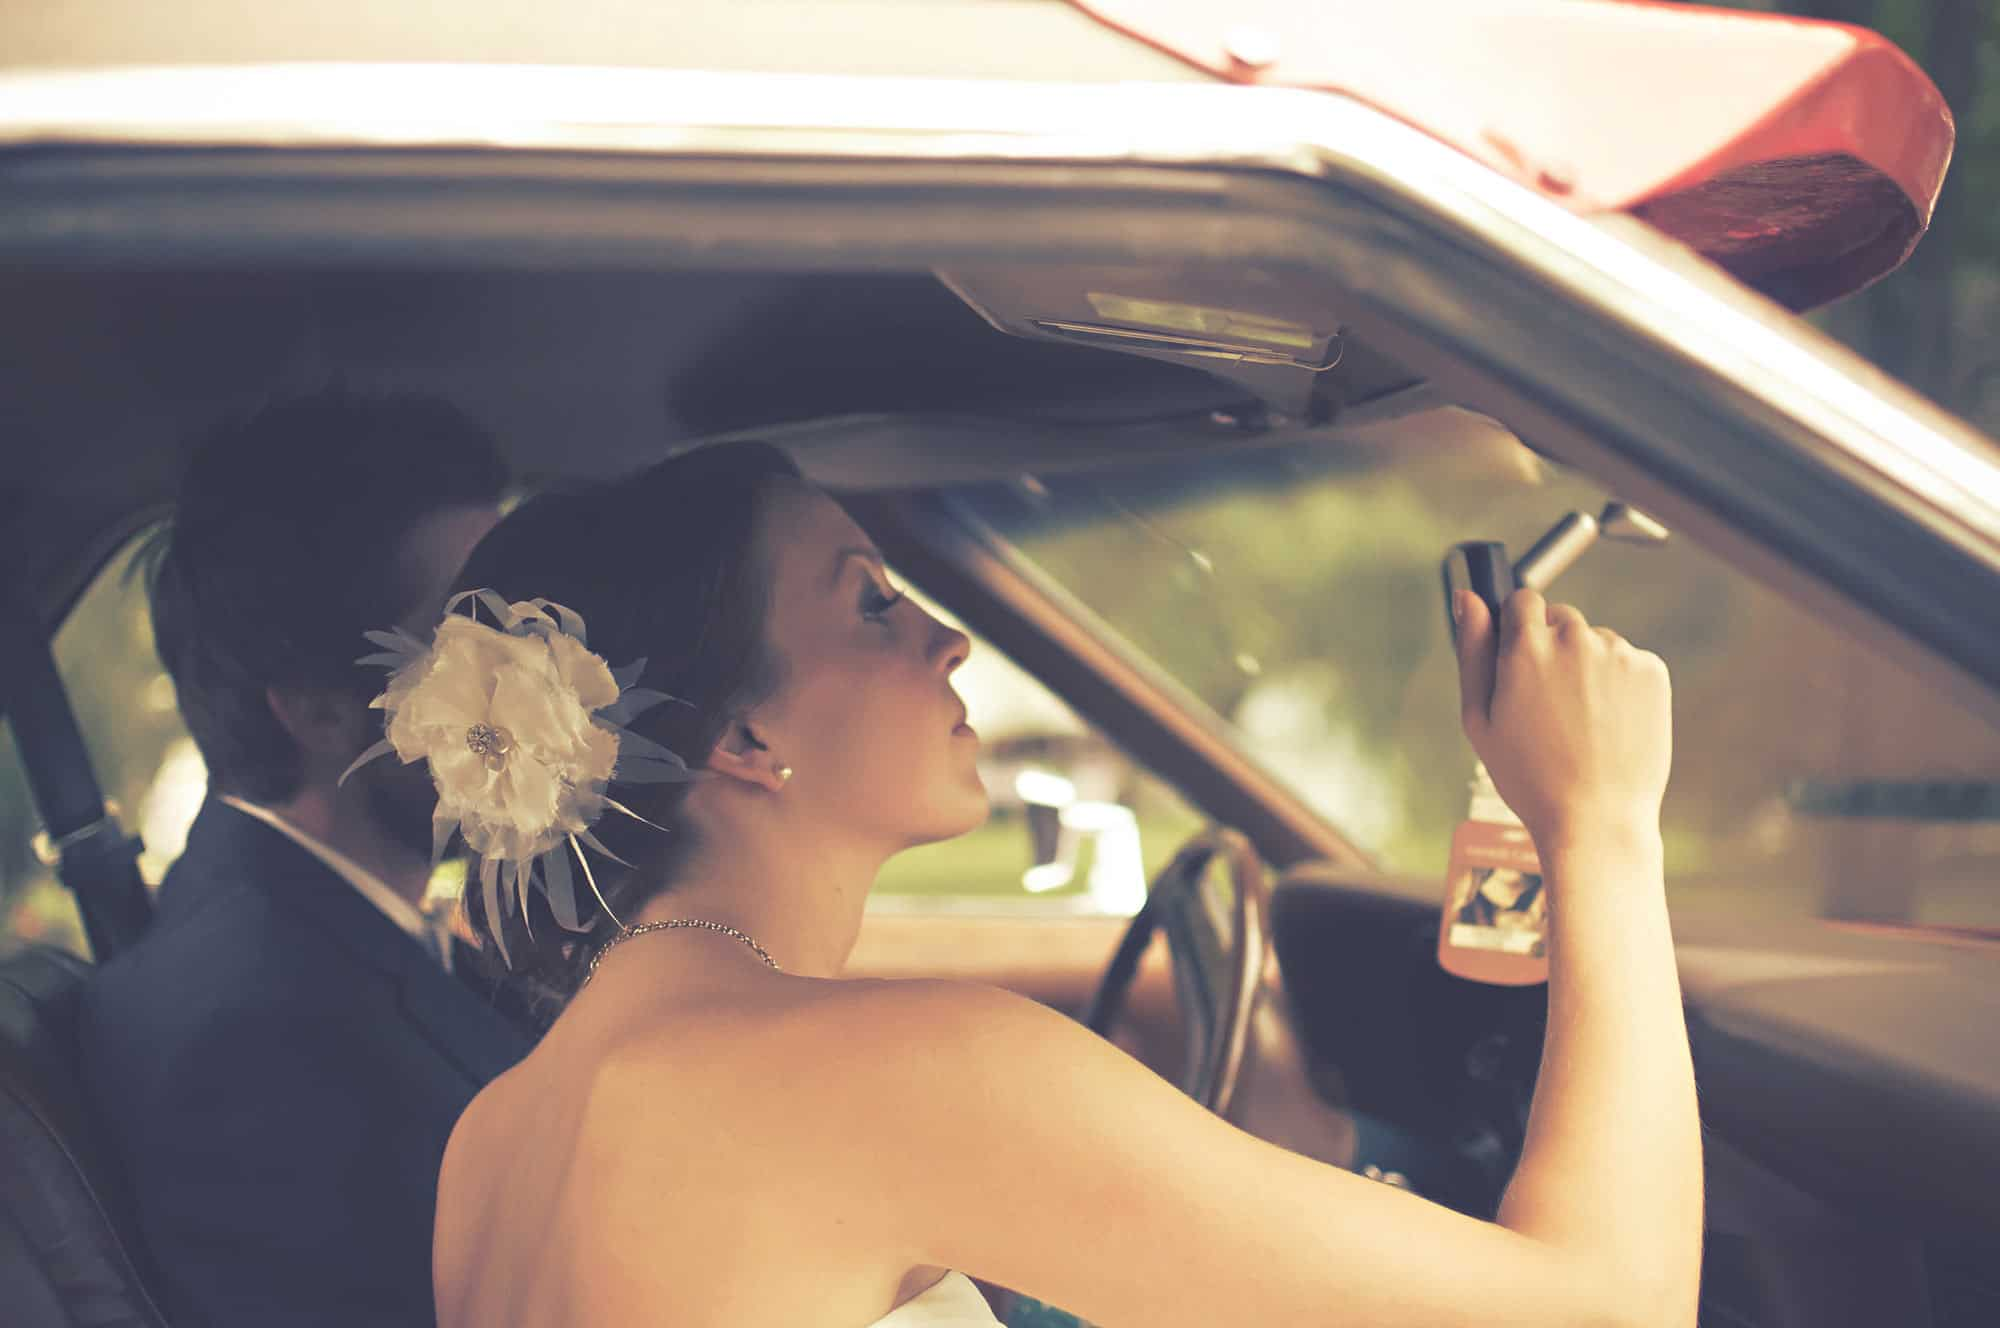 boss-fight-free-stock-images-photos-photography-wedding-couple-mirror-car